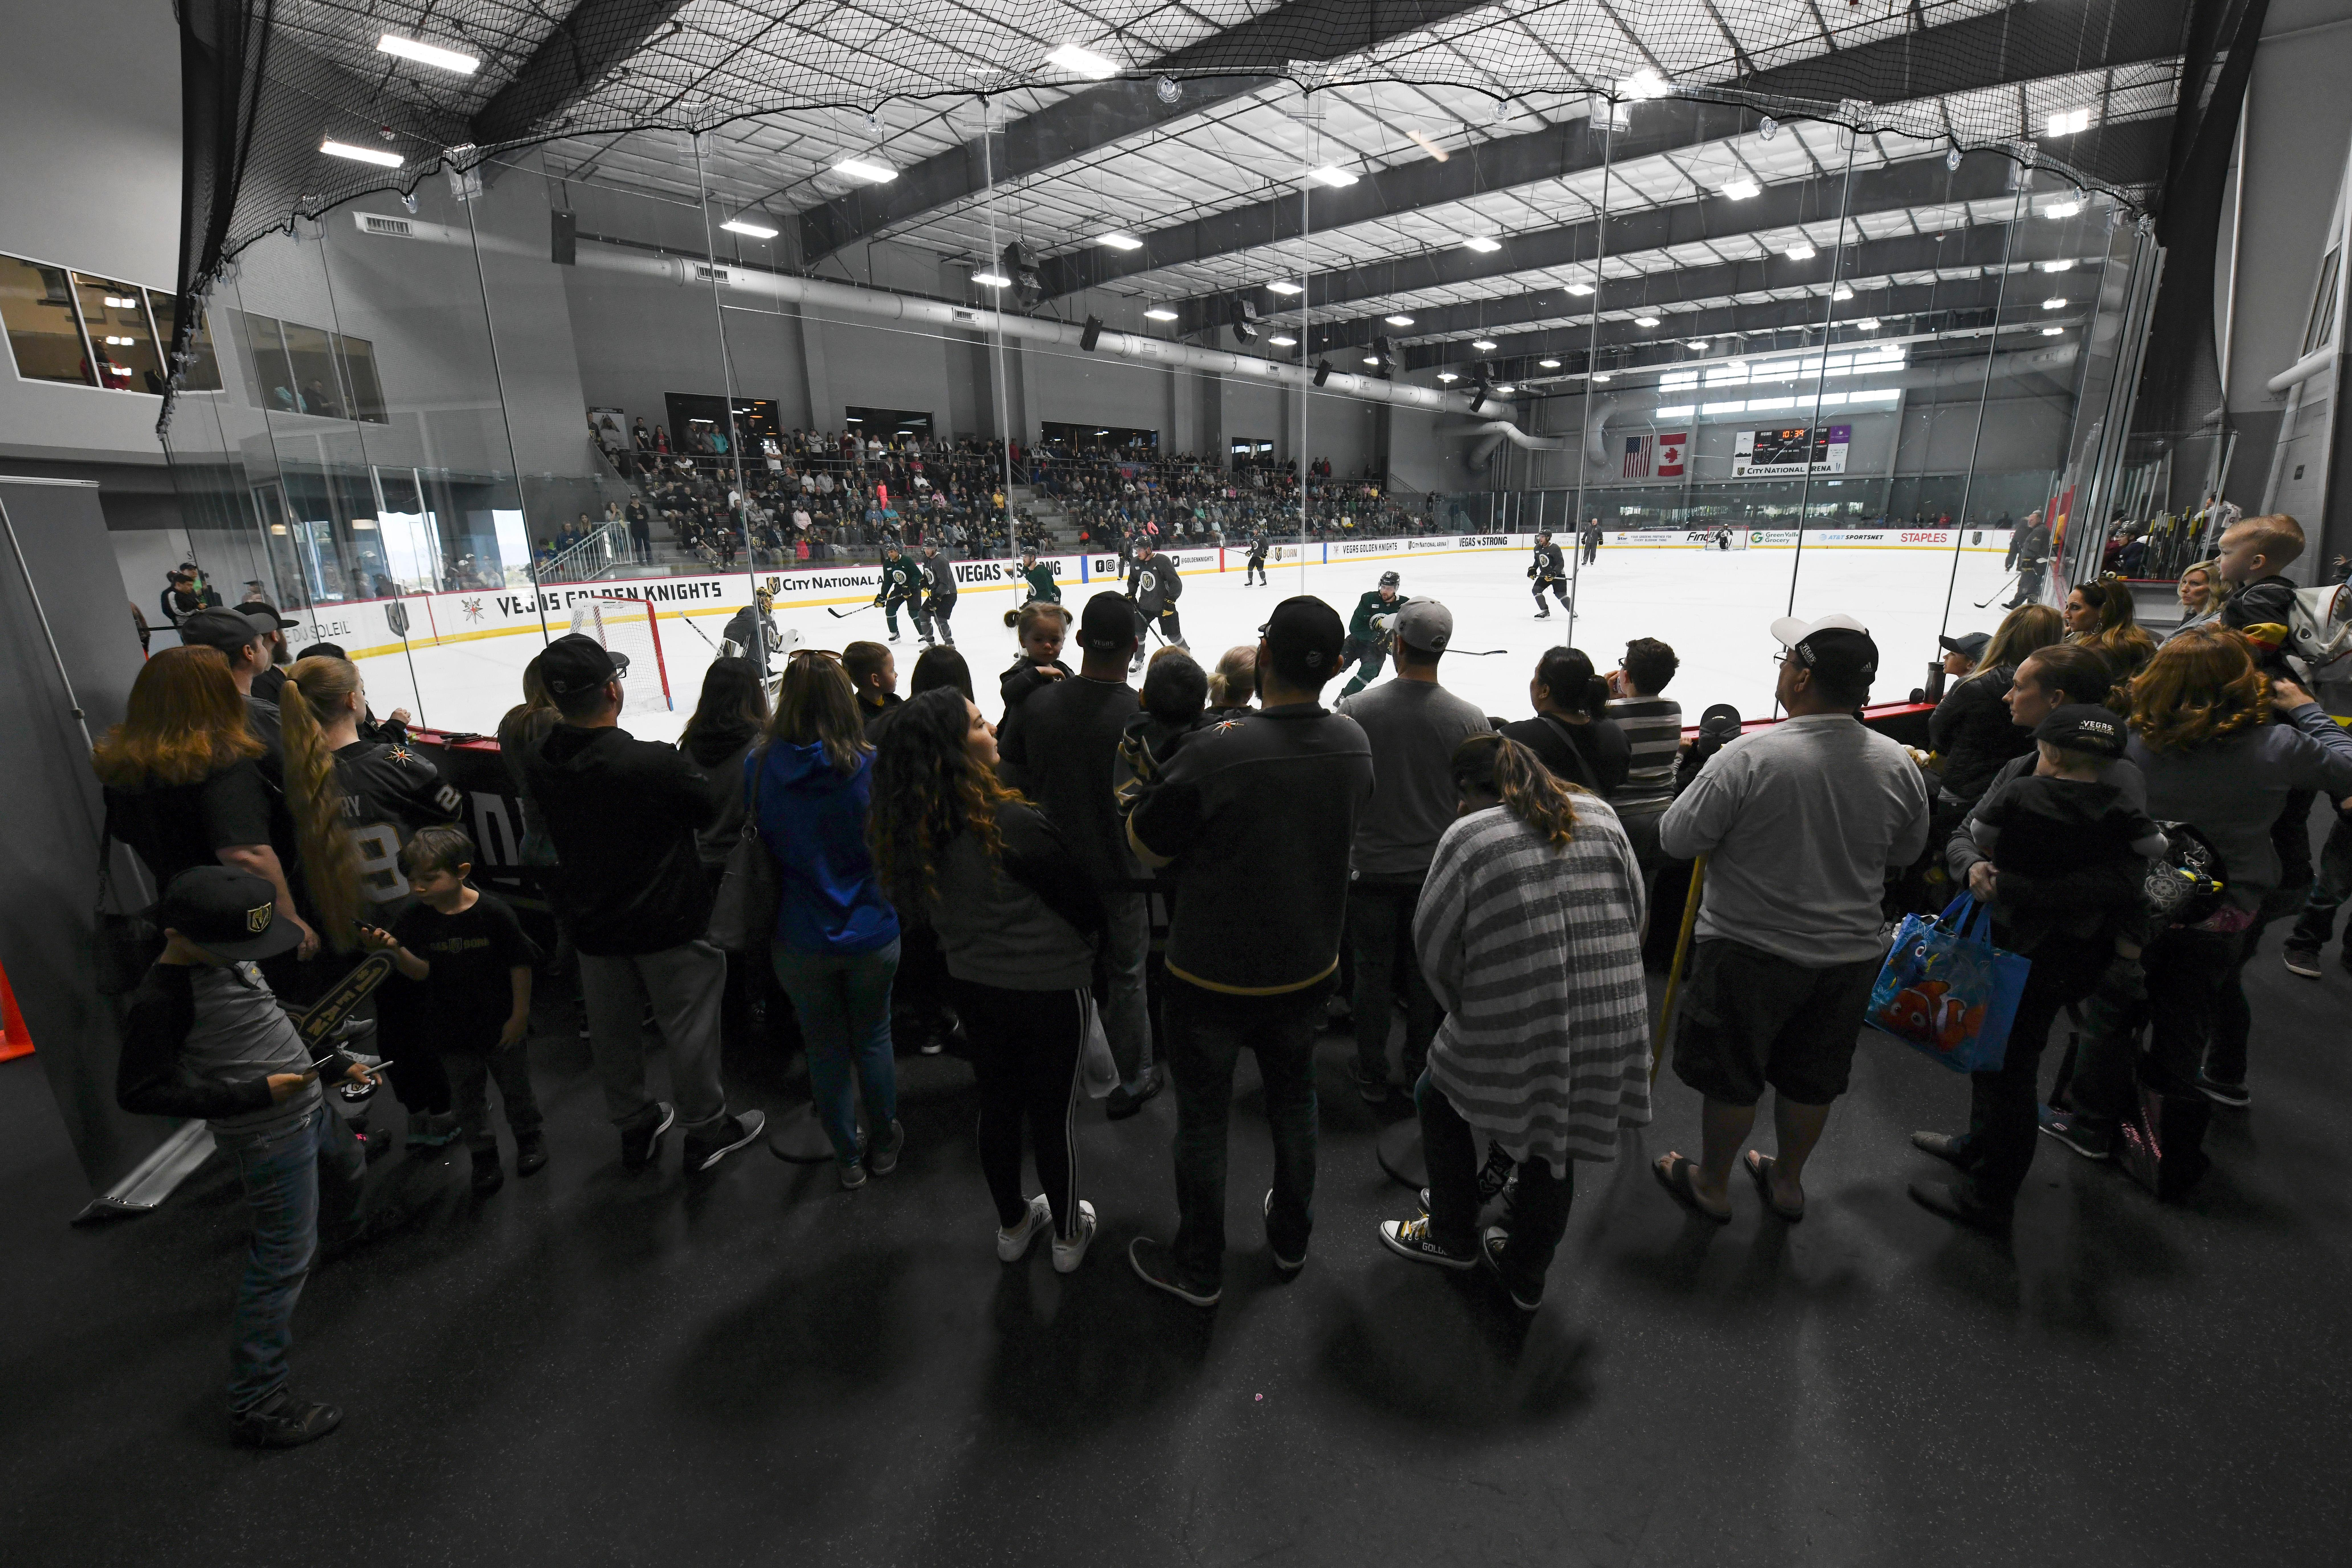 Fans watch the action during the Vegas Golden Knights practice Friday, April 20, 2018, at City National Arena in Las Vegas. CREDIT: Sam Morris/Las Vegas News Bureau